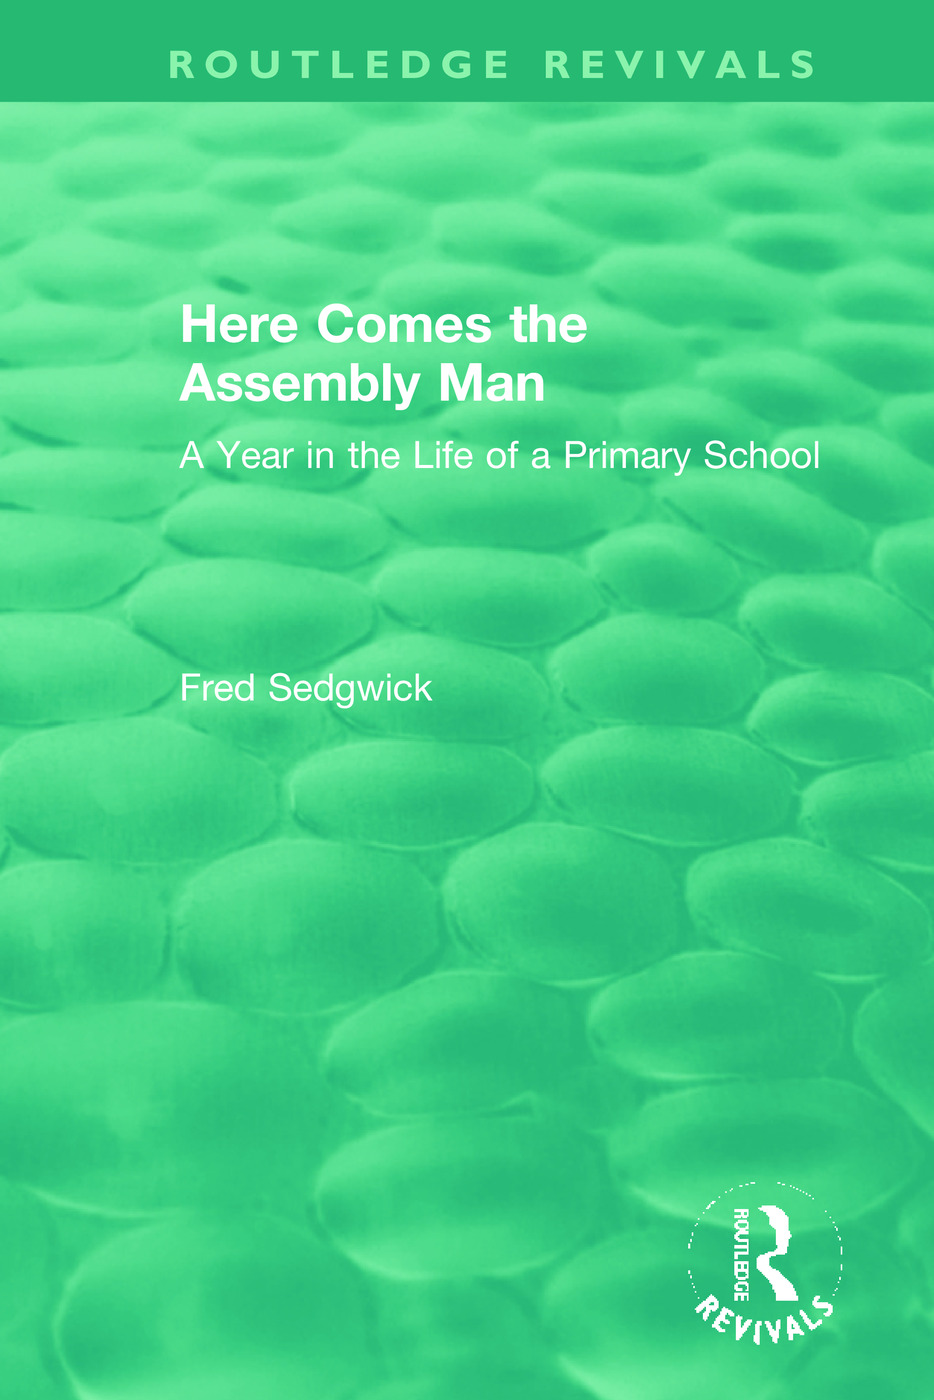 Here Comes the Assembly Man: A Year in the Life of a Primary School book cover